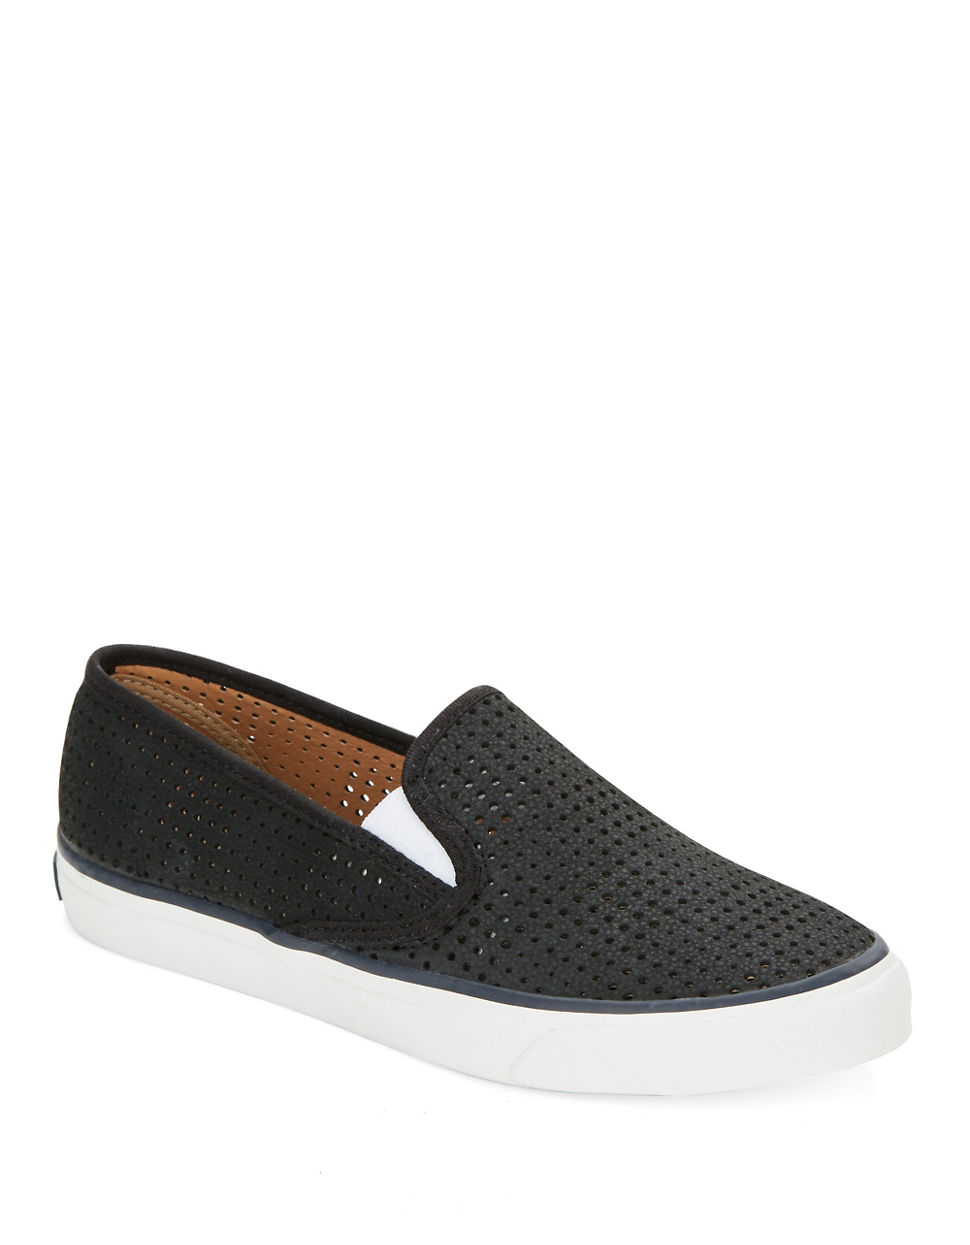 Lyst Sperry Top Sider Seaside Perforated Leather Slip On